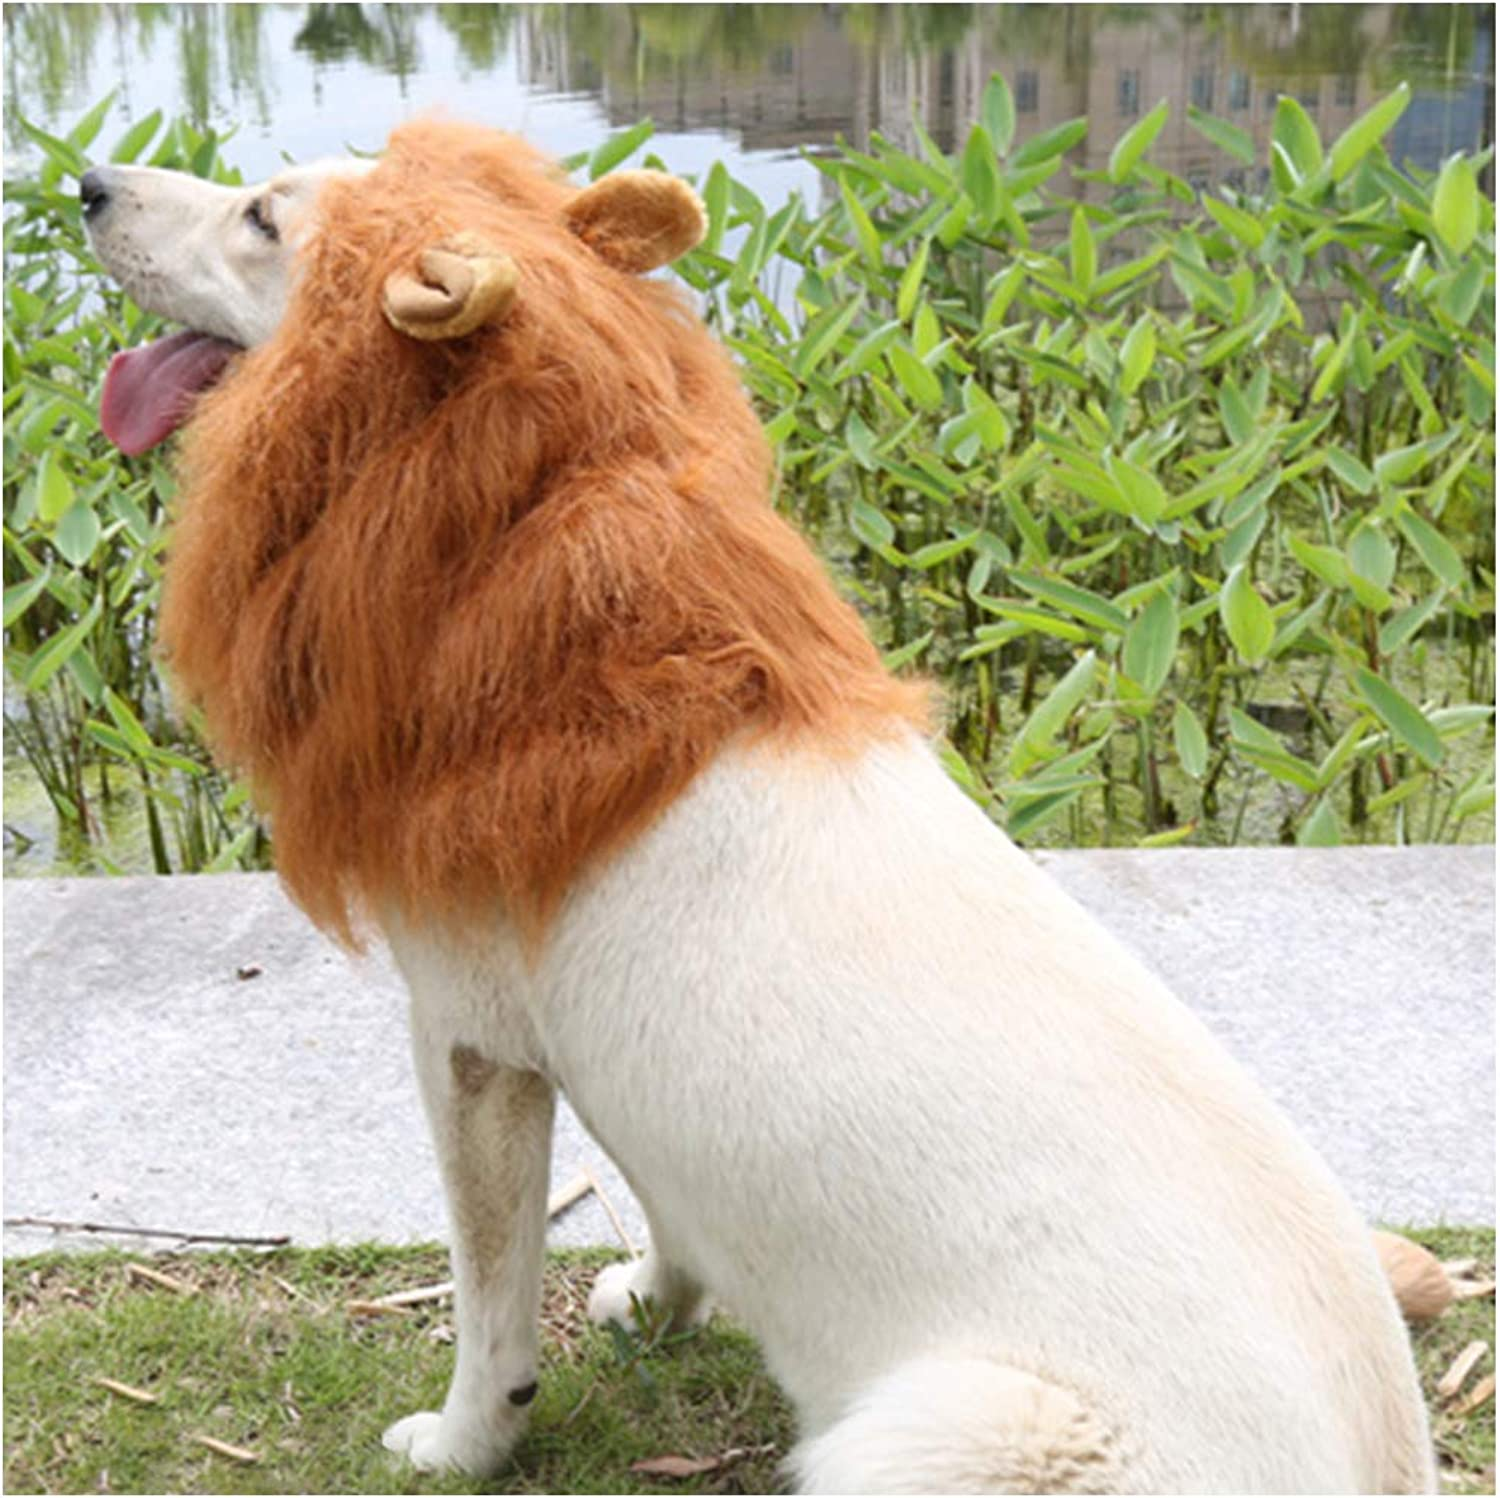 Halloween Dog Lion Mane Wig Costume Christmas Dog Lion Hair Adjustable Washable Funny Fancy Puppy Dress Up Realistic Dog Hair Mane Cospaly Costume for Holiday Photo Shoots Party Ears and Tail Brown